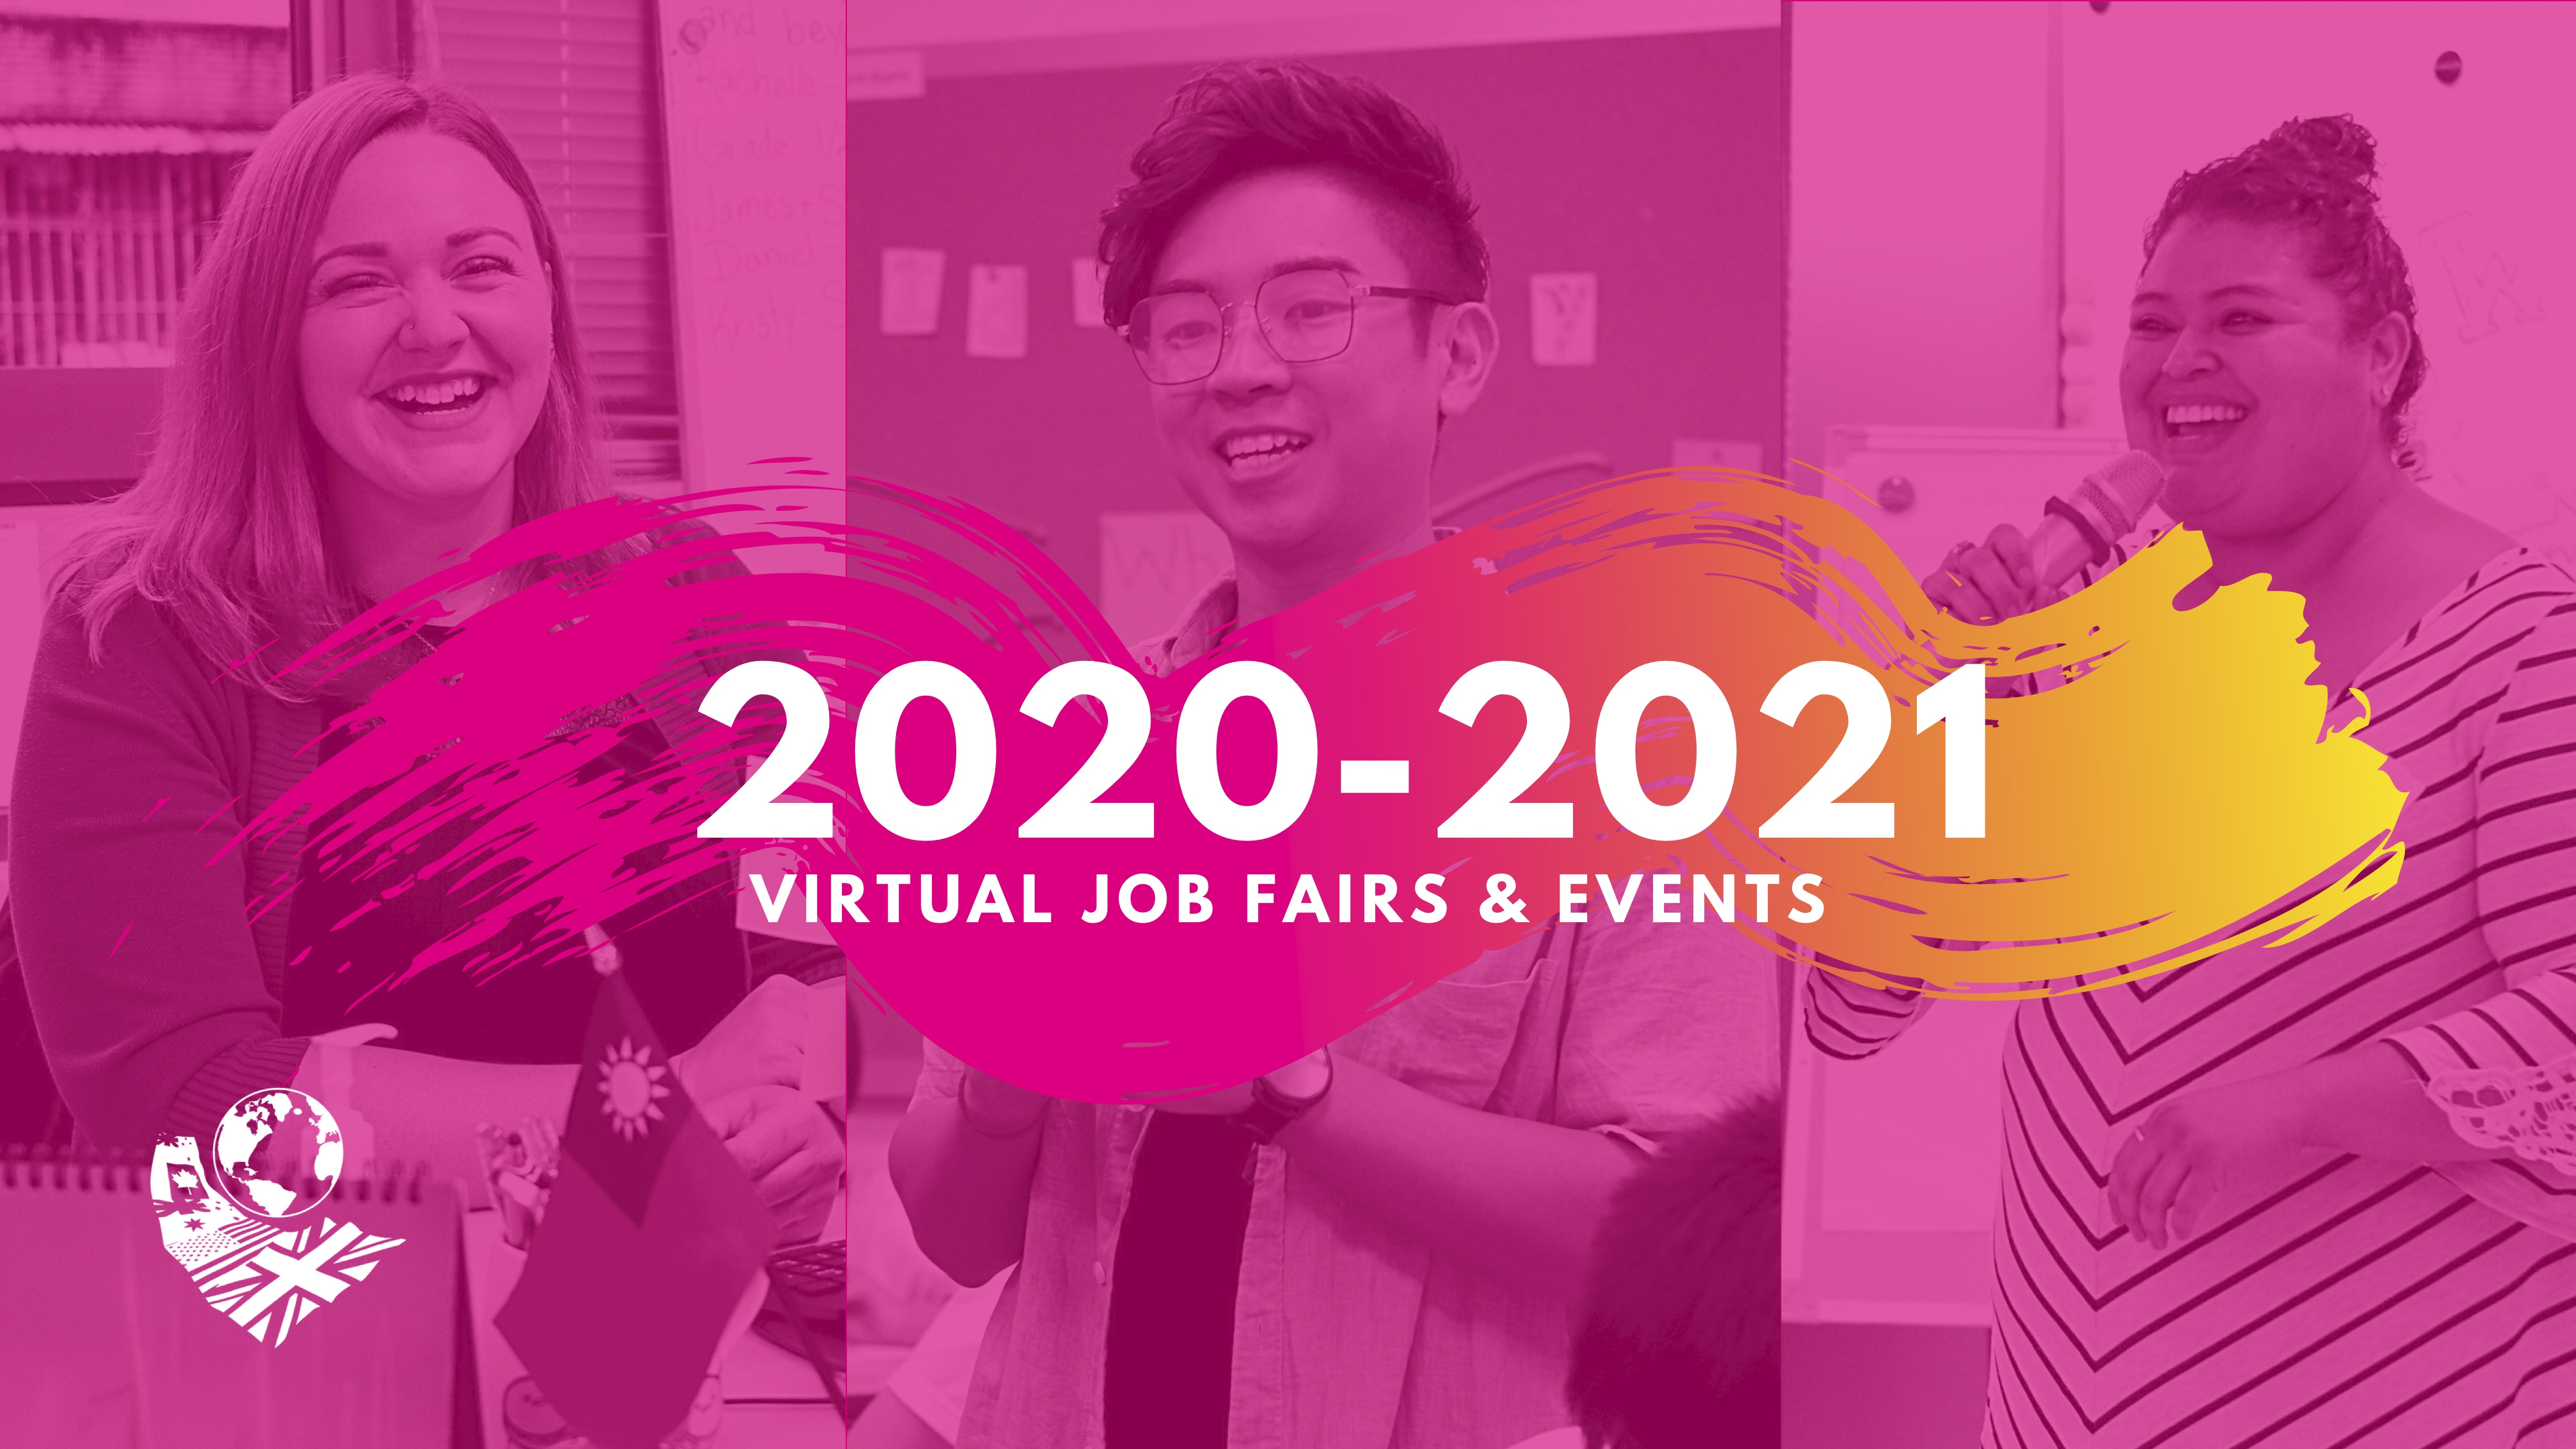 2021 fairs events post